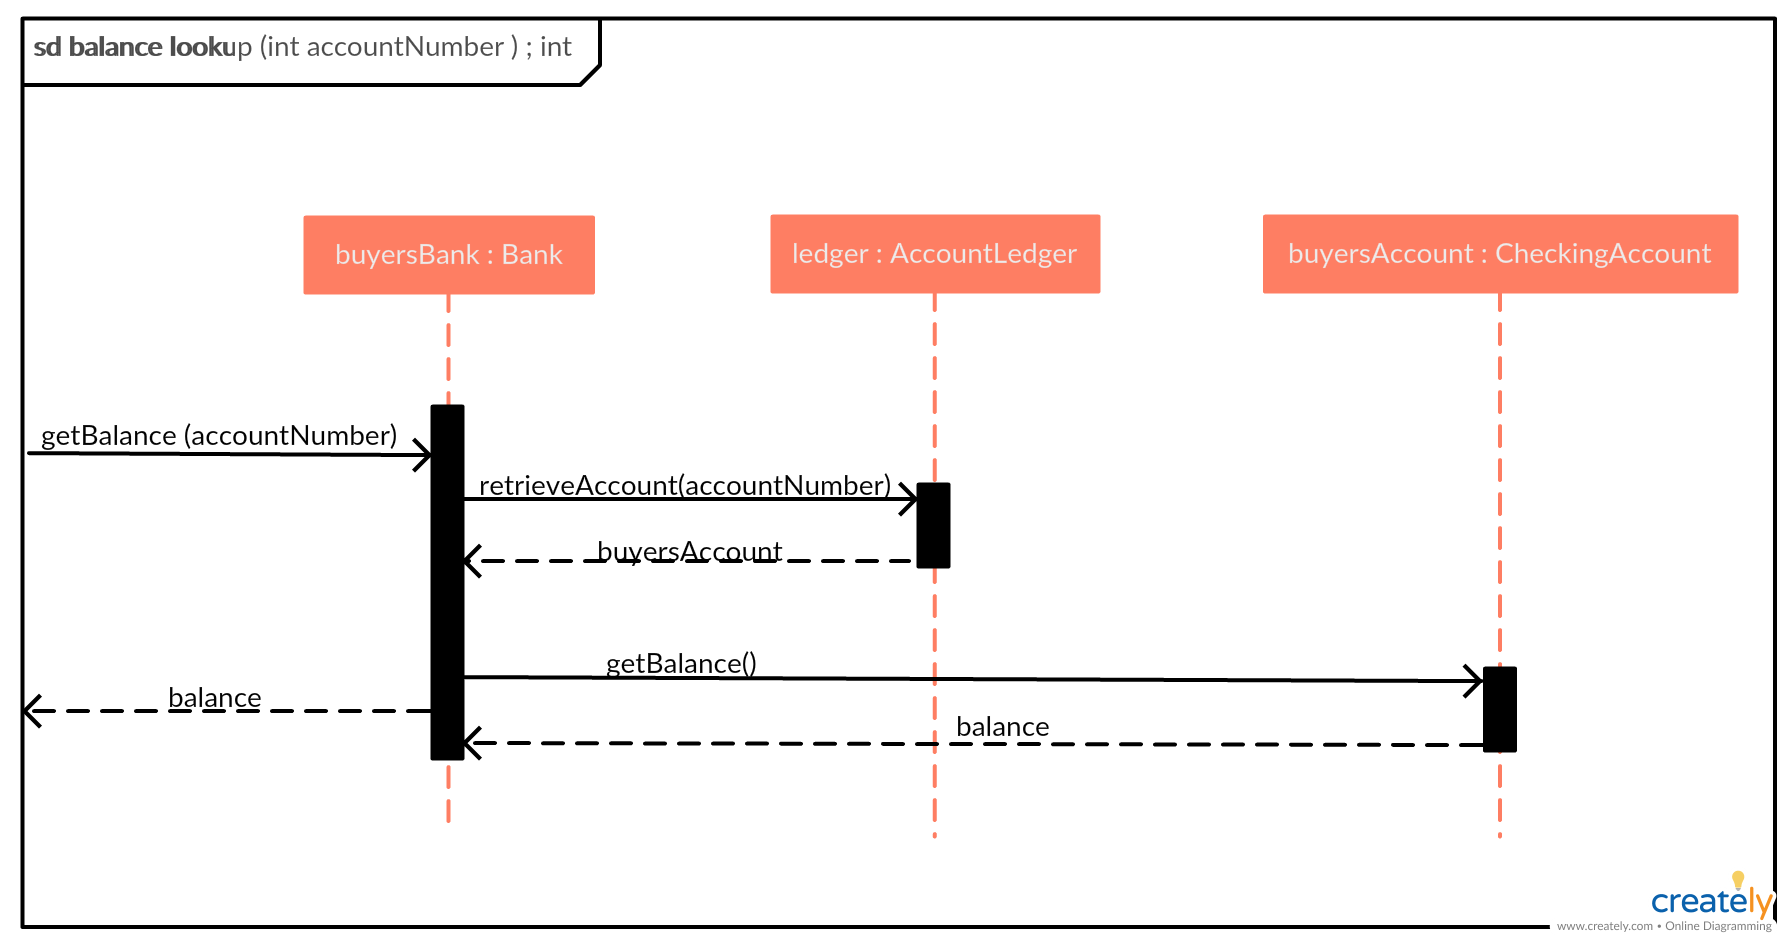 hight resolution of balance lookup sequence diagram example click the image to get all the important aspects